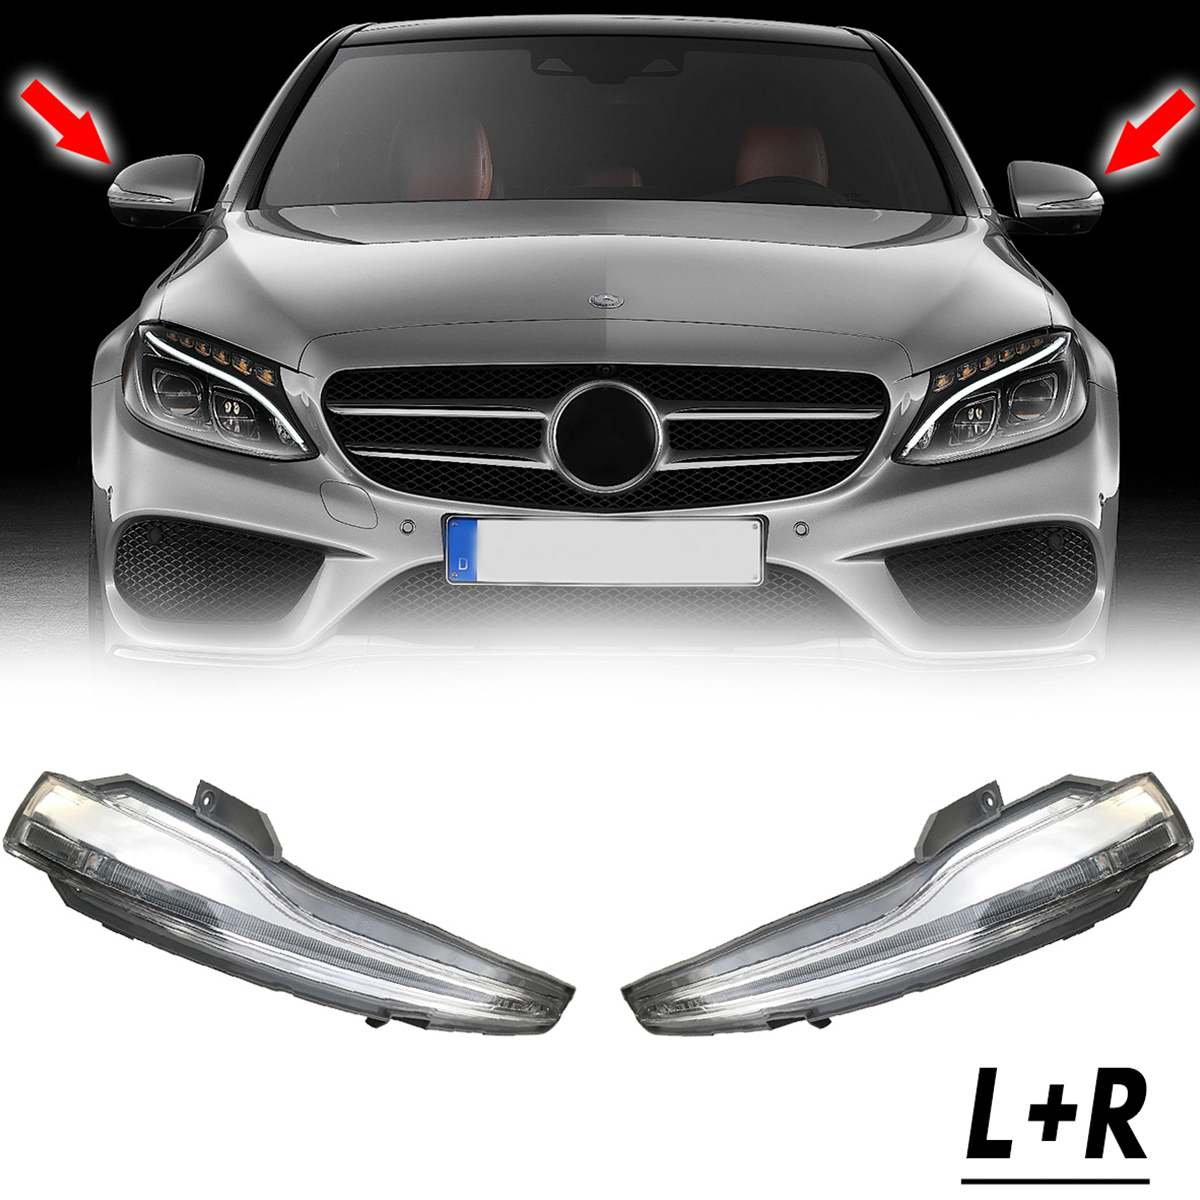 1 Piar Amber Side <font><b>LED</b></font> Rearview Mirror Turn Signal Light Wing Indicator Lamp For <font><b>Mercedes</b></font> For <font><b>Benz</b></font> CLASS <font><b>W205</b></font> W222 W213 X205 image